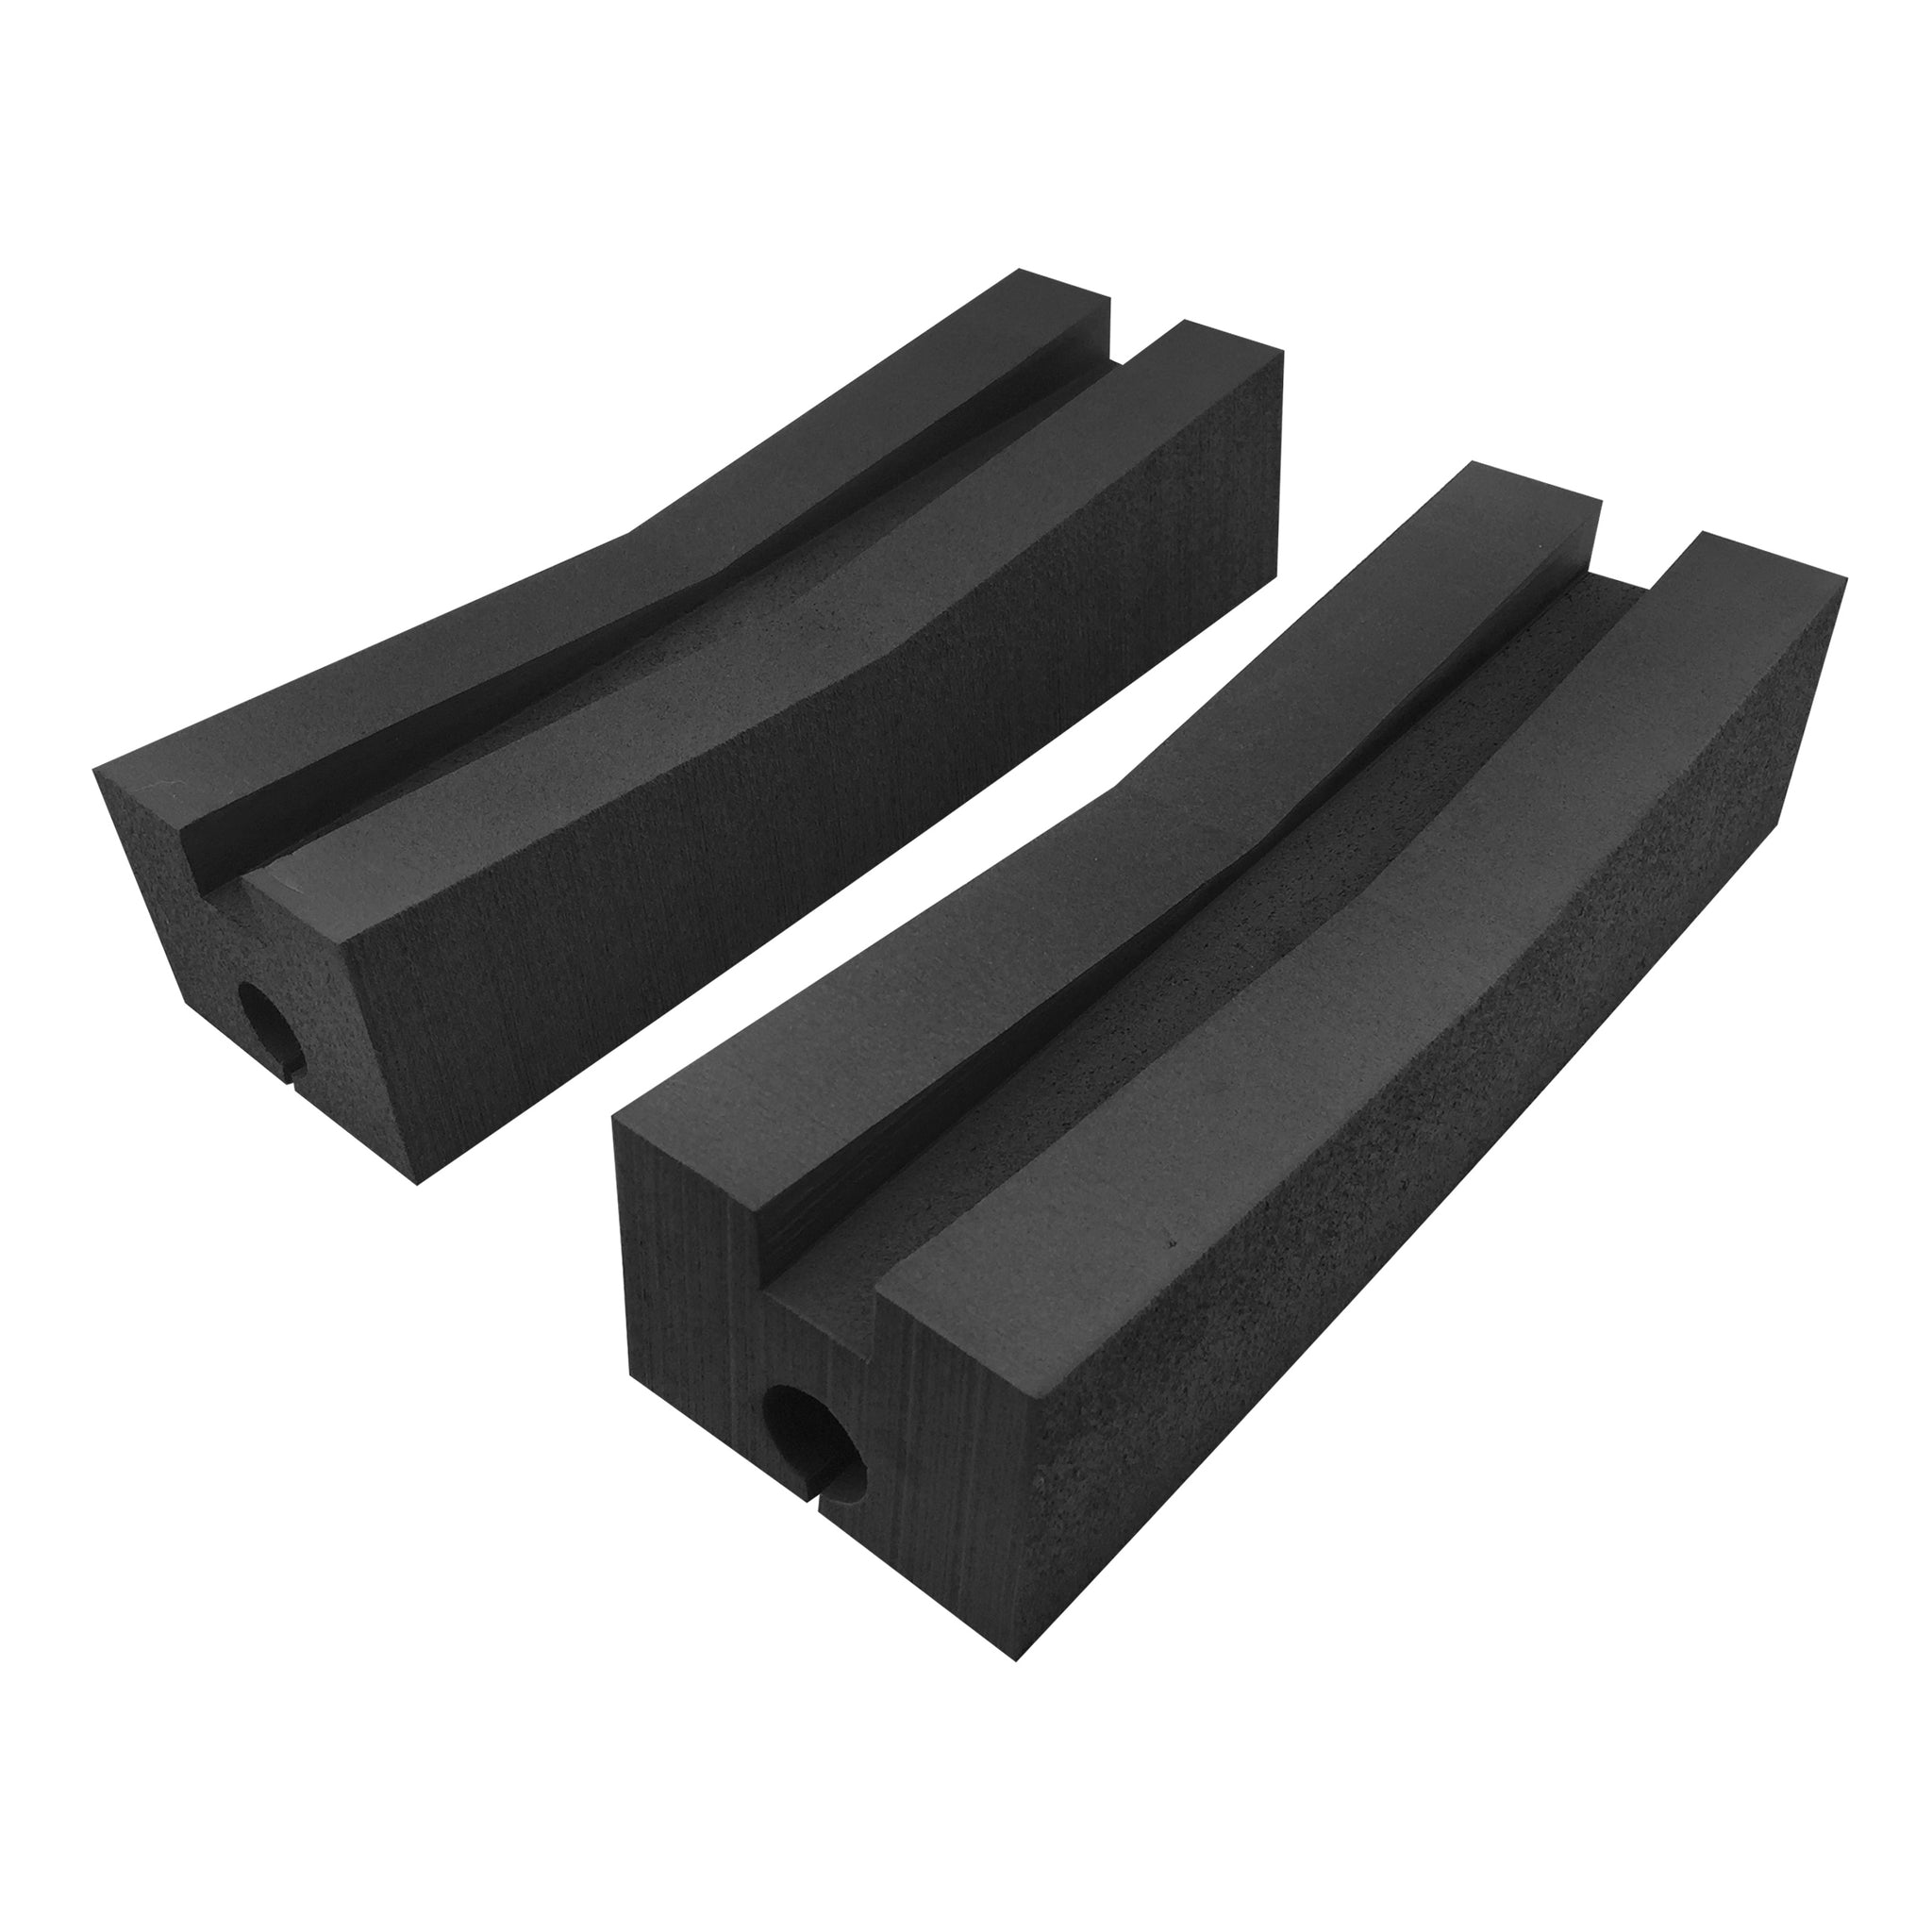 Kayak Roof Rack Foam Blocks - 2 PK